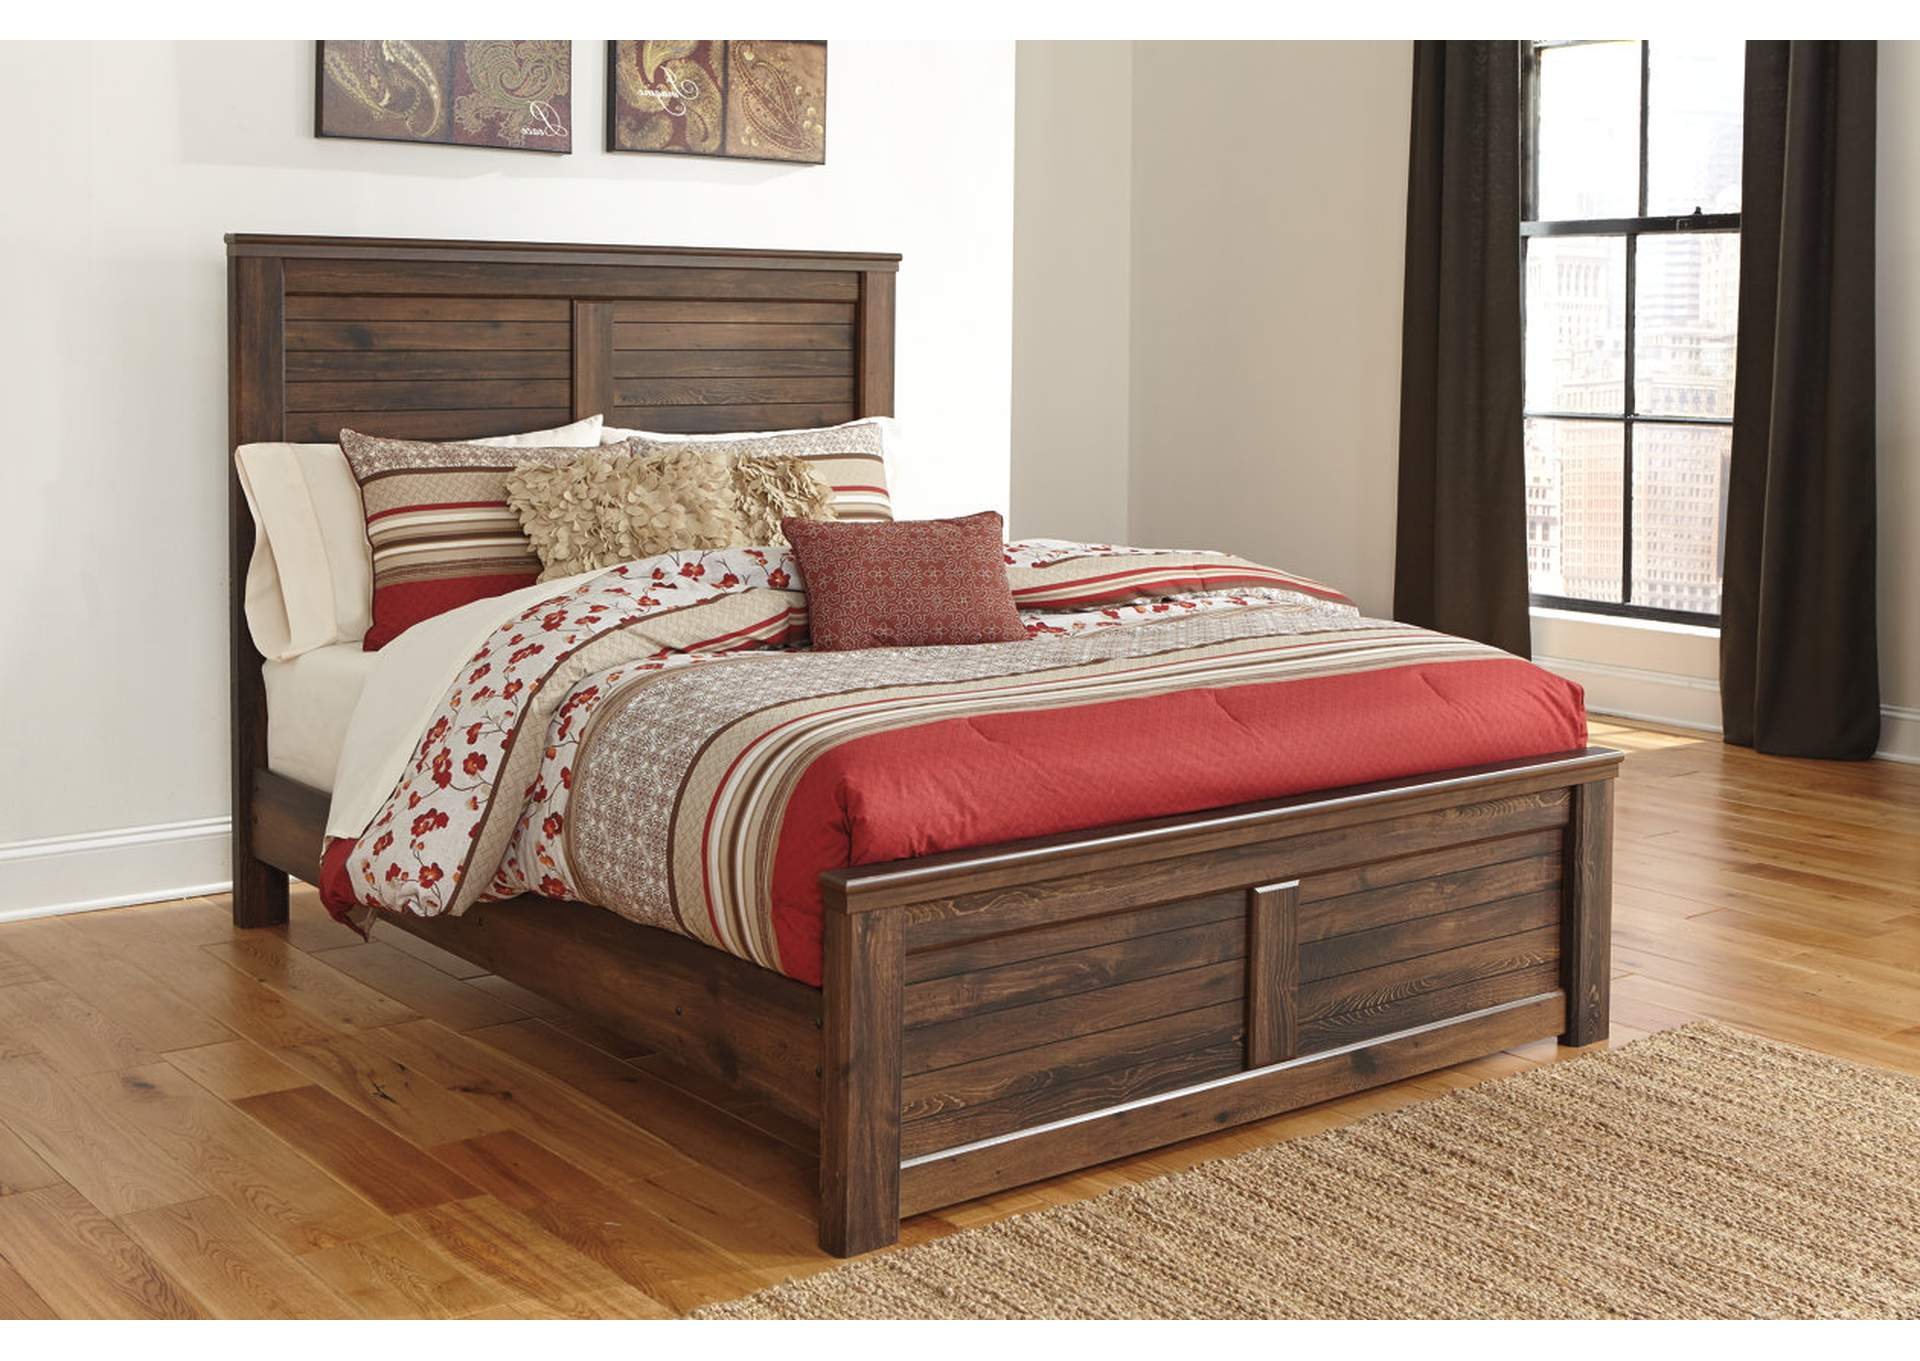 Bedroom Furniture Also Image Of Bedroom Furniture Sets Memphis Tn And